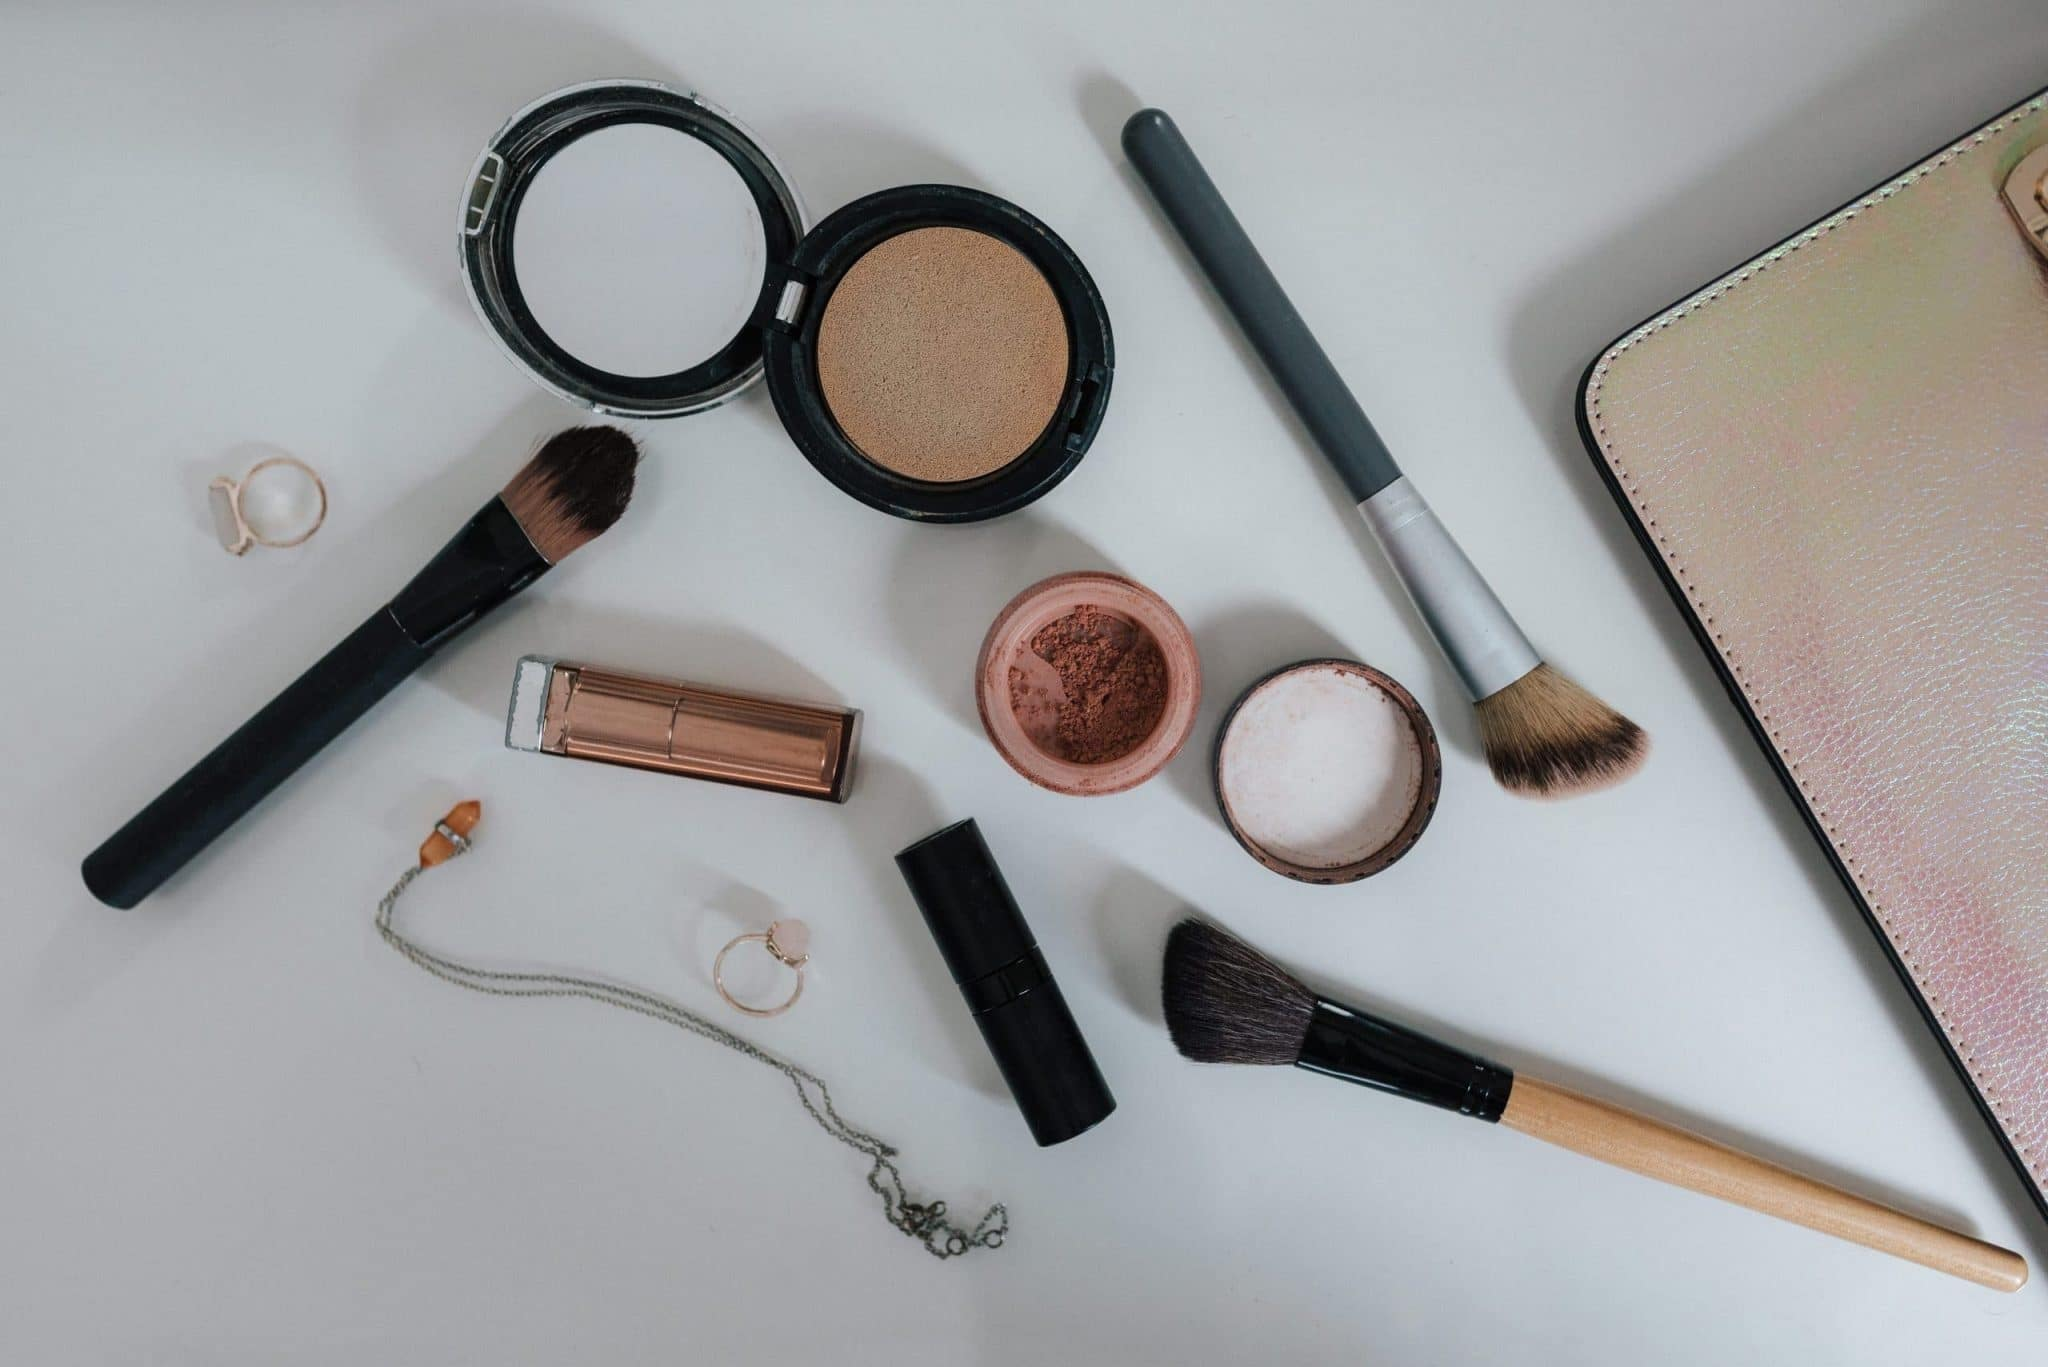 Flat Lay Photography of Makeup Brushes and Compacts